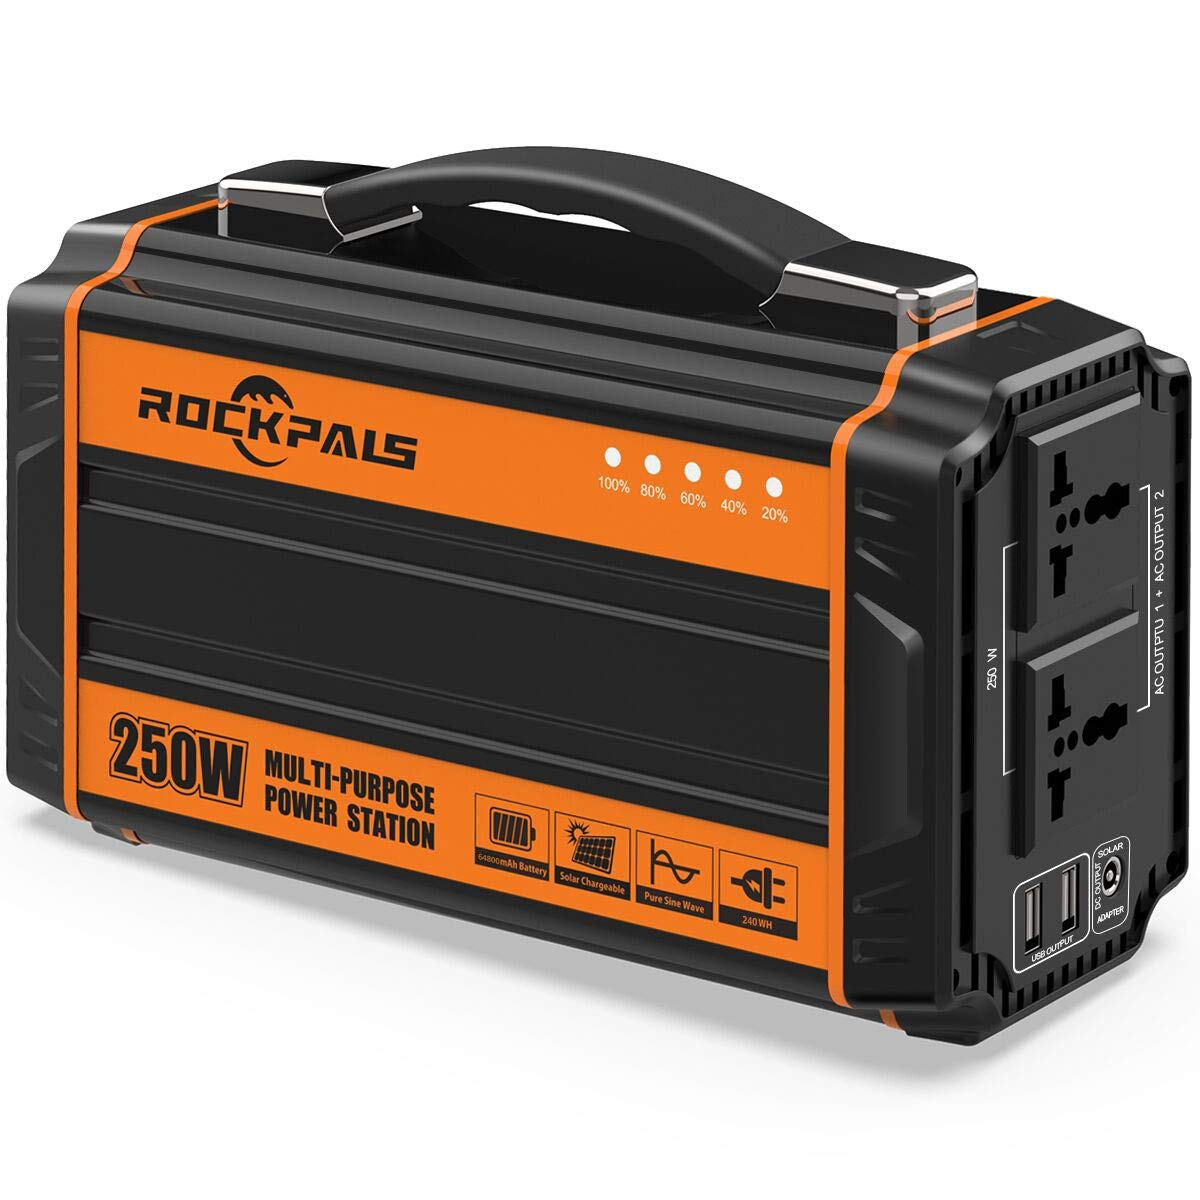 Rockpals 250W Power Station + 60W Solar Panel Kits [In Stock on May 5] - Rockpals